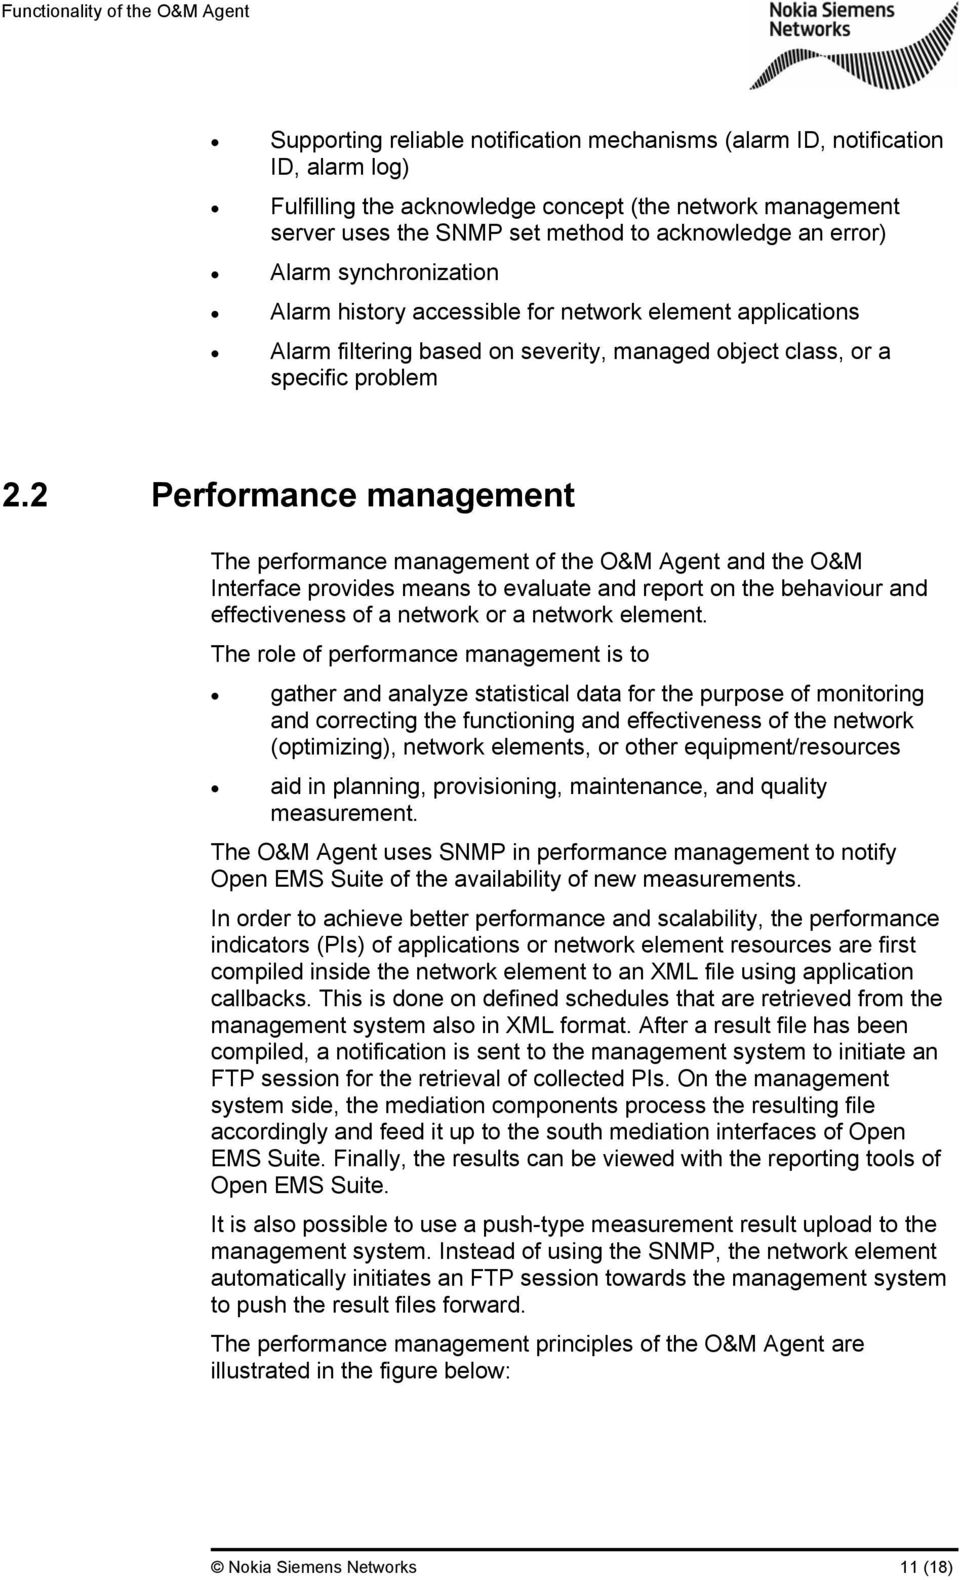 2 Performance management The performance management of the O&M Agent and the O&M Interface provides means to evaluate and report on the behaviour and effectiveness of a network or a network element.